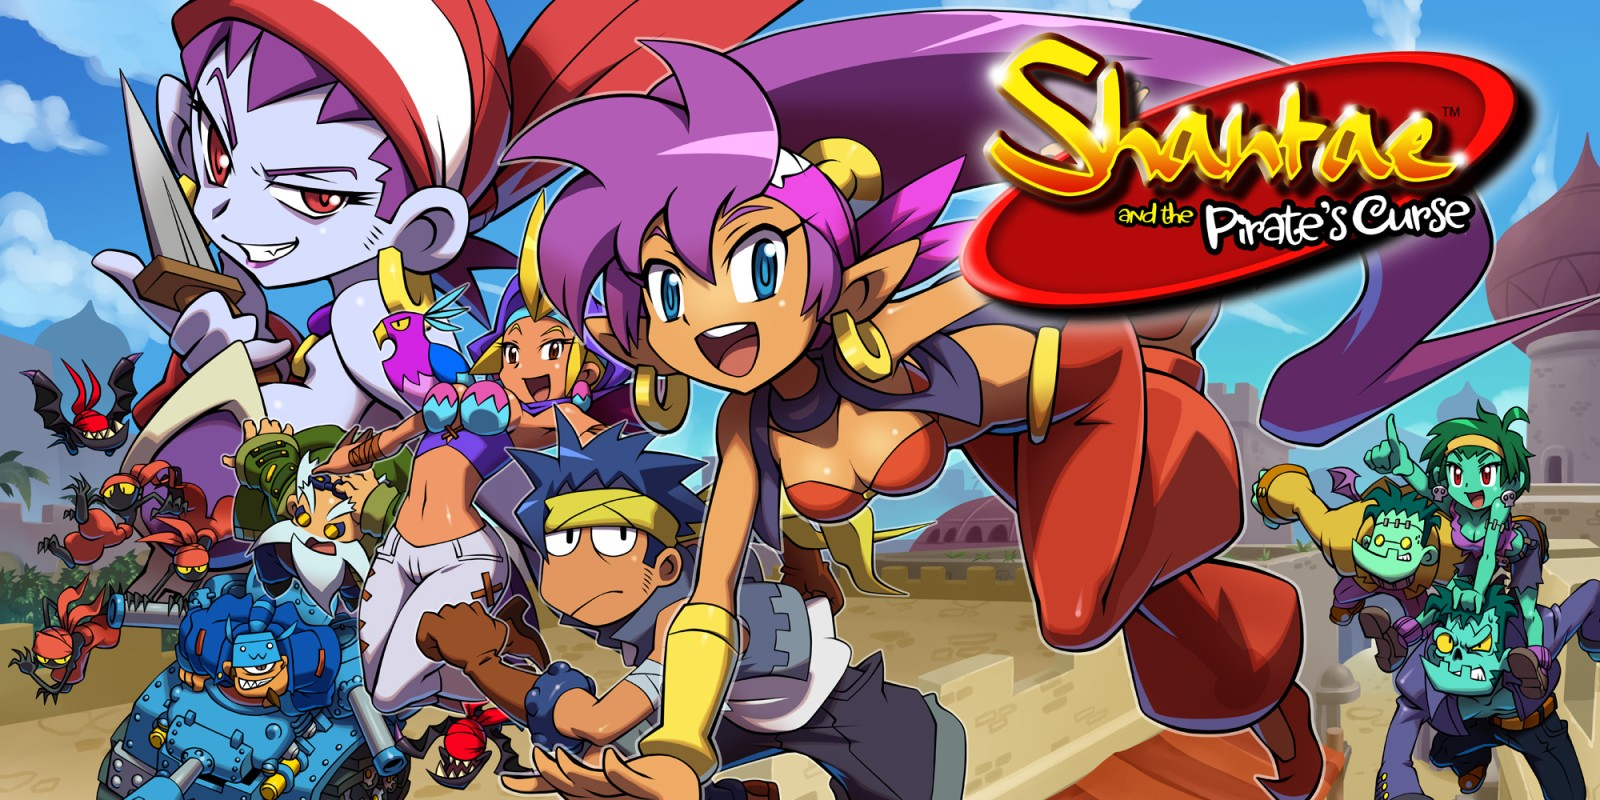 Shantae and the Pirate's Curse Switch Review